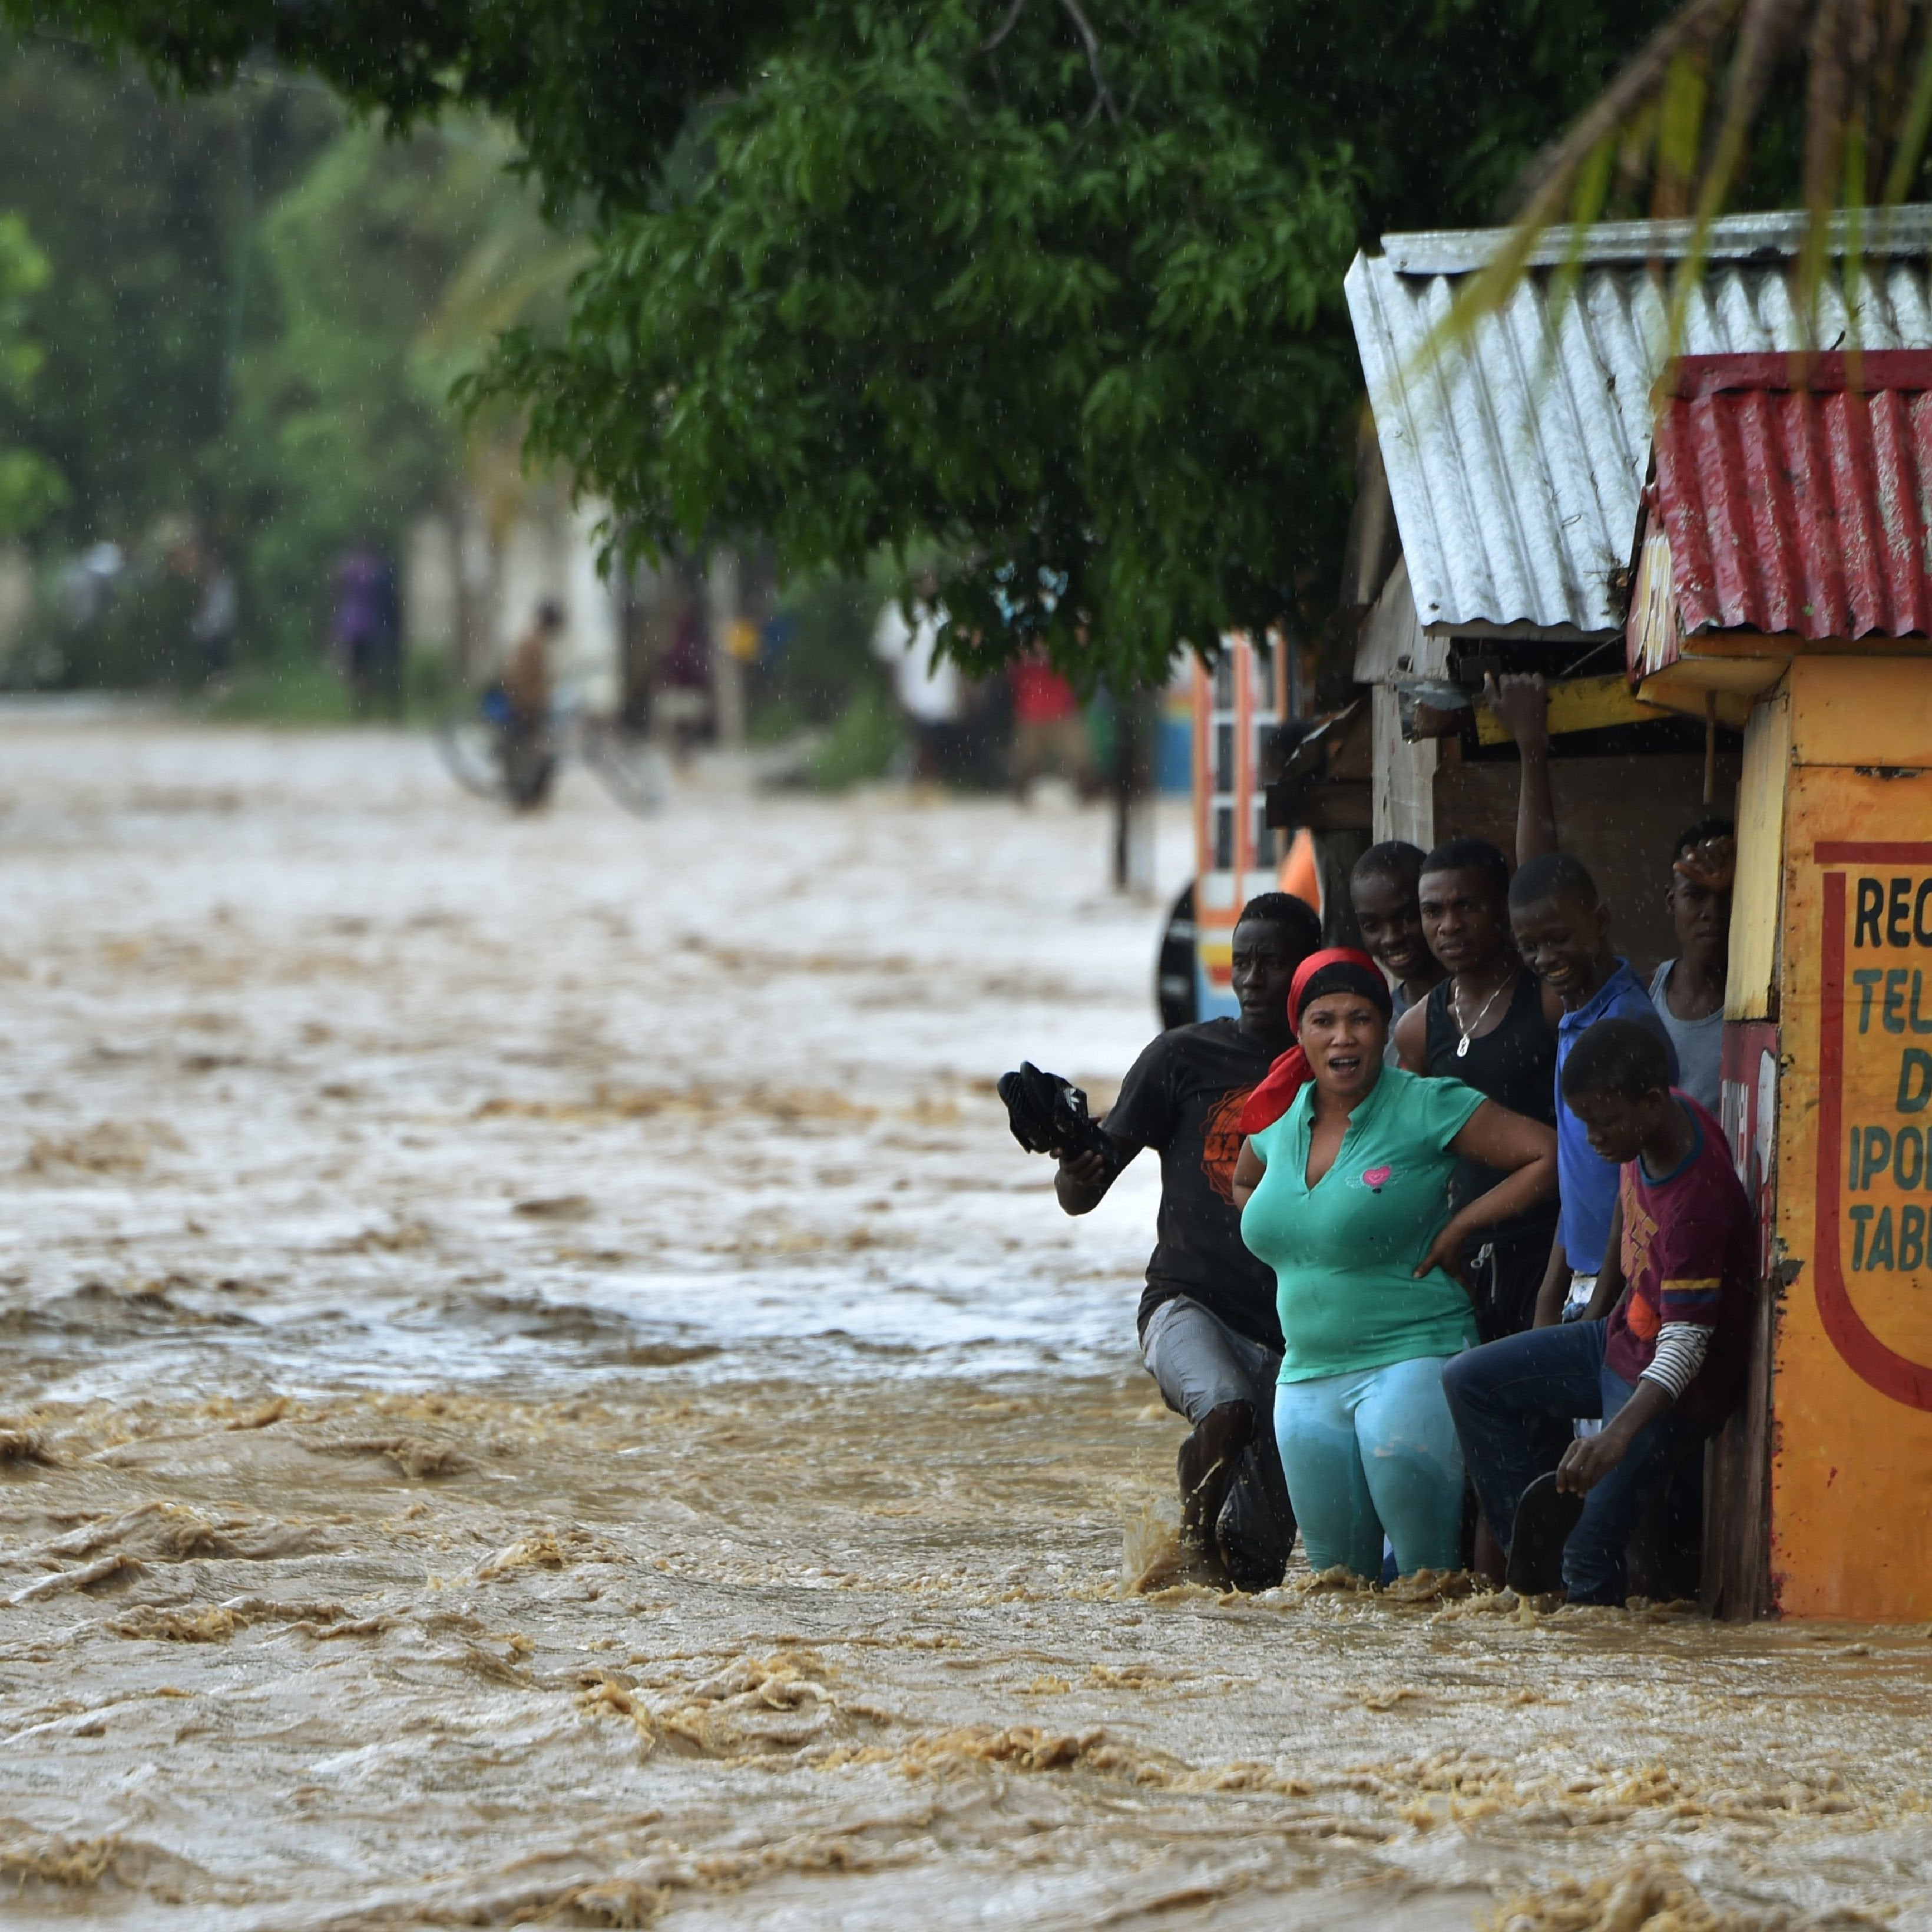 This Is Haiti's Current Situation After Being Rampaged By Hurricane Matthew